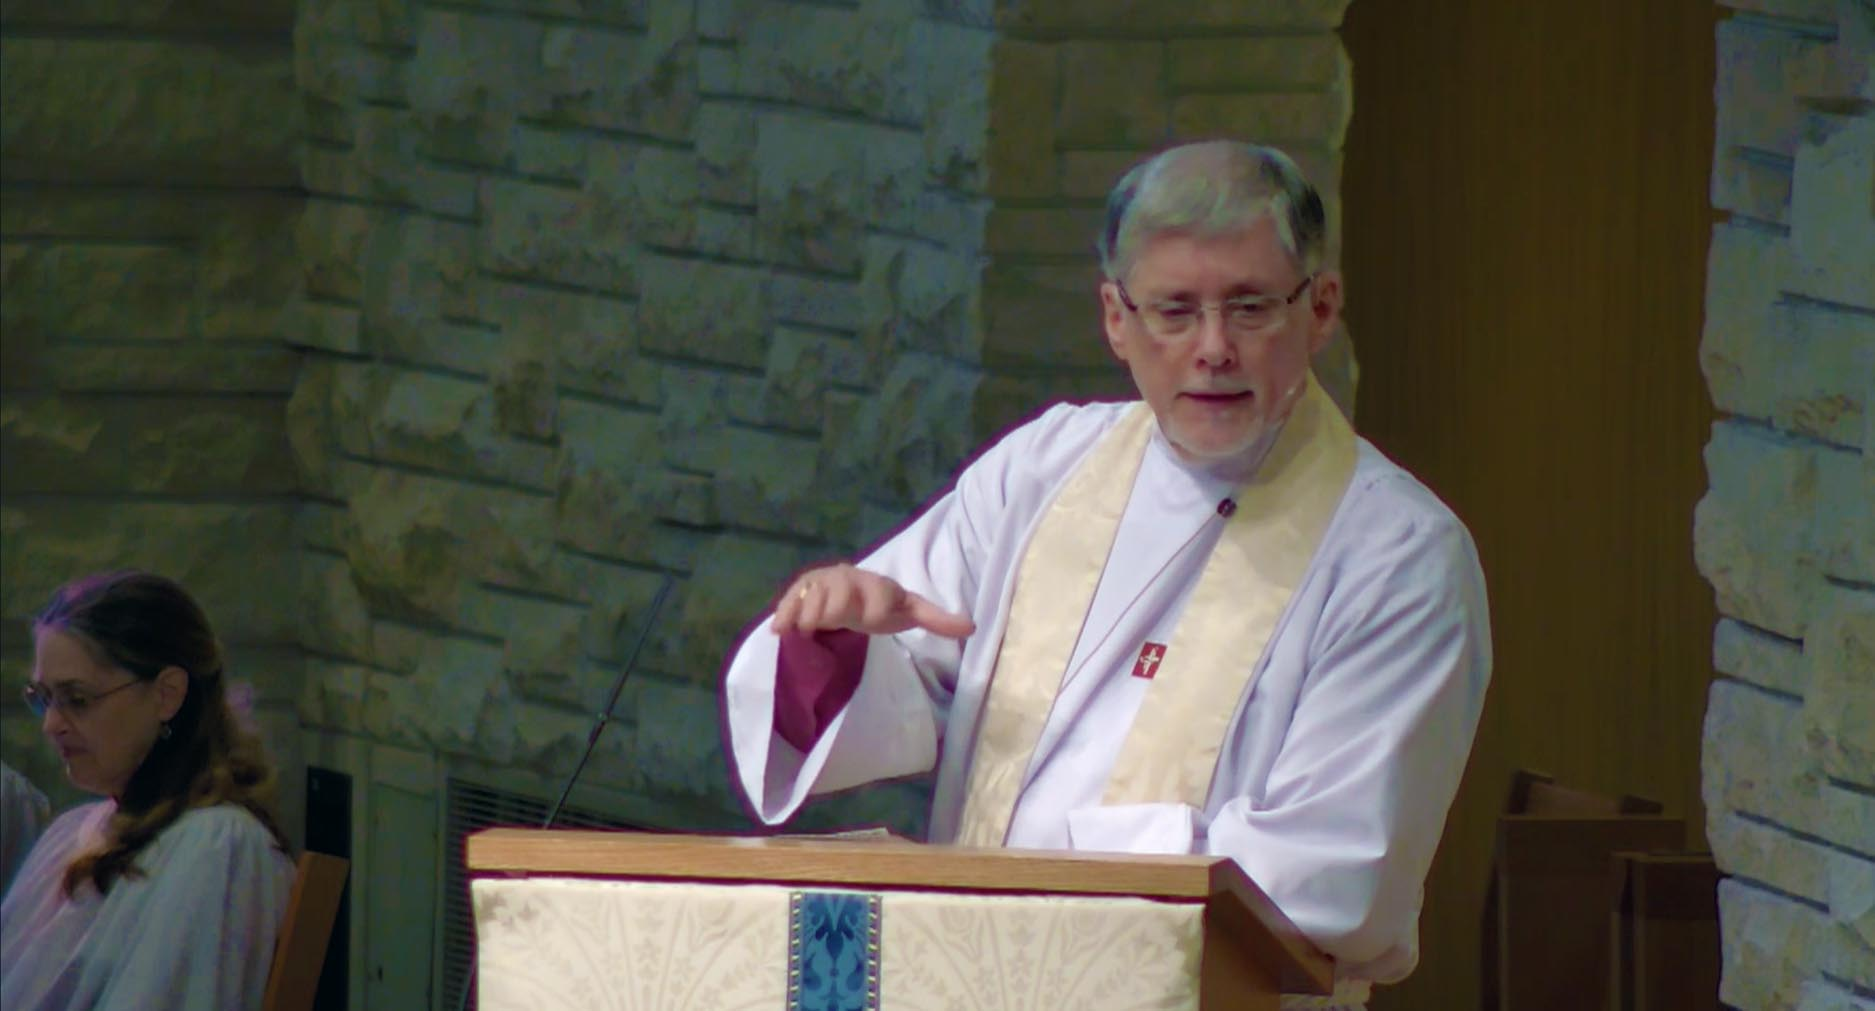 Opening Your Alabaster Box - Sermon by Bishop Gary Lillibridge